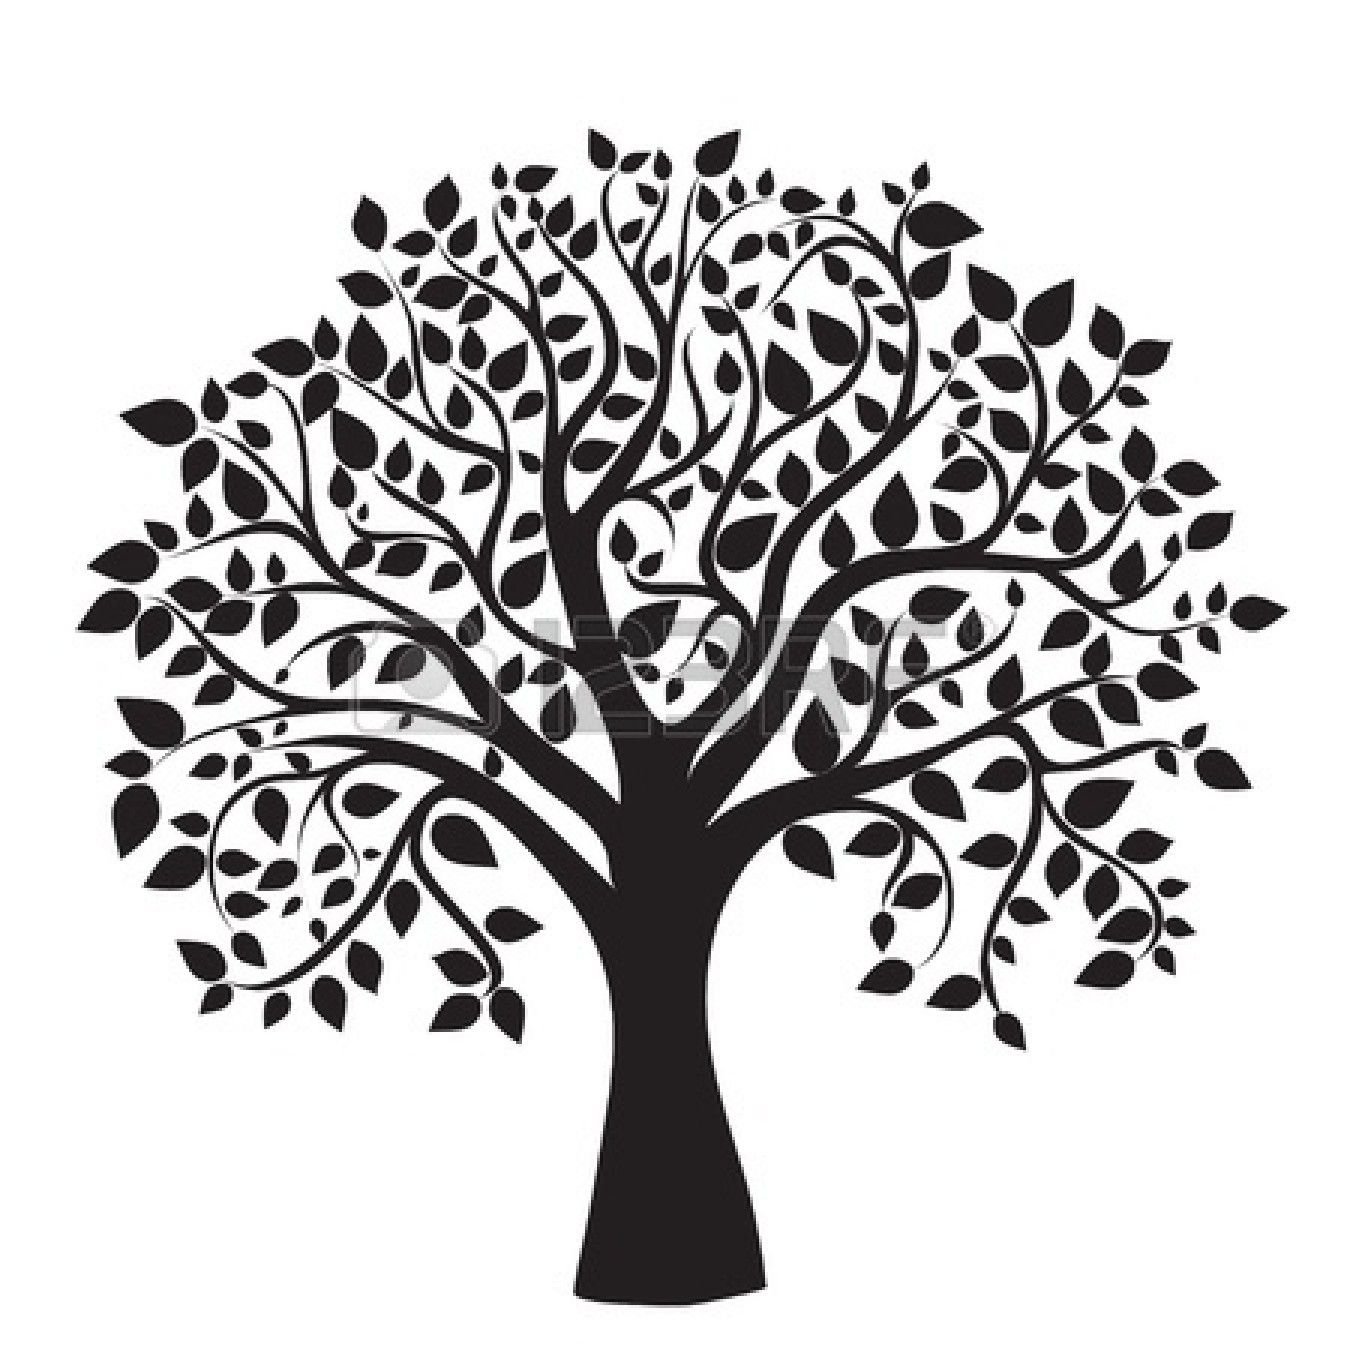 Family tree genealoy and backgrounds clipart Family tree